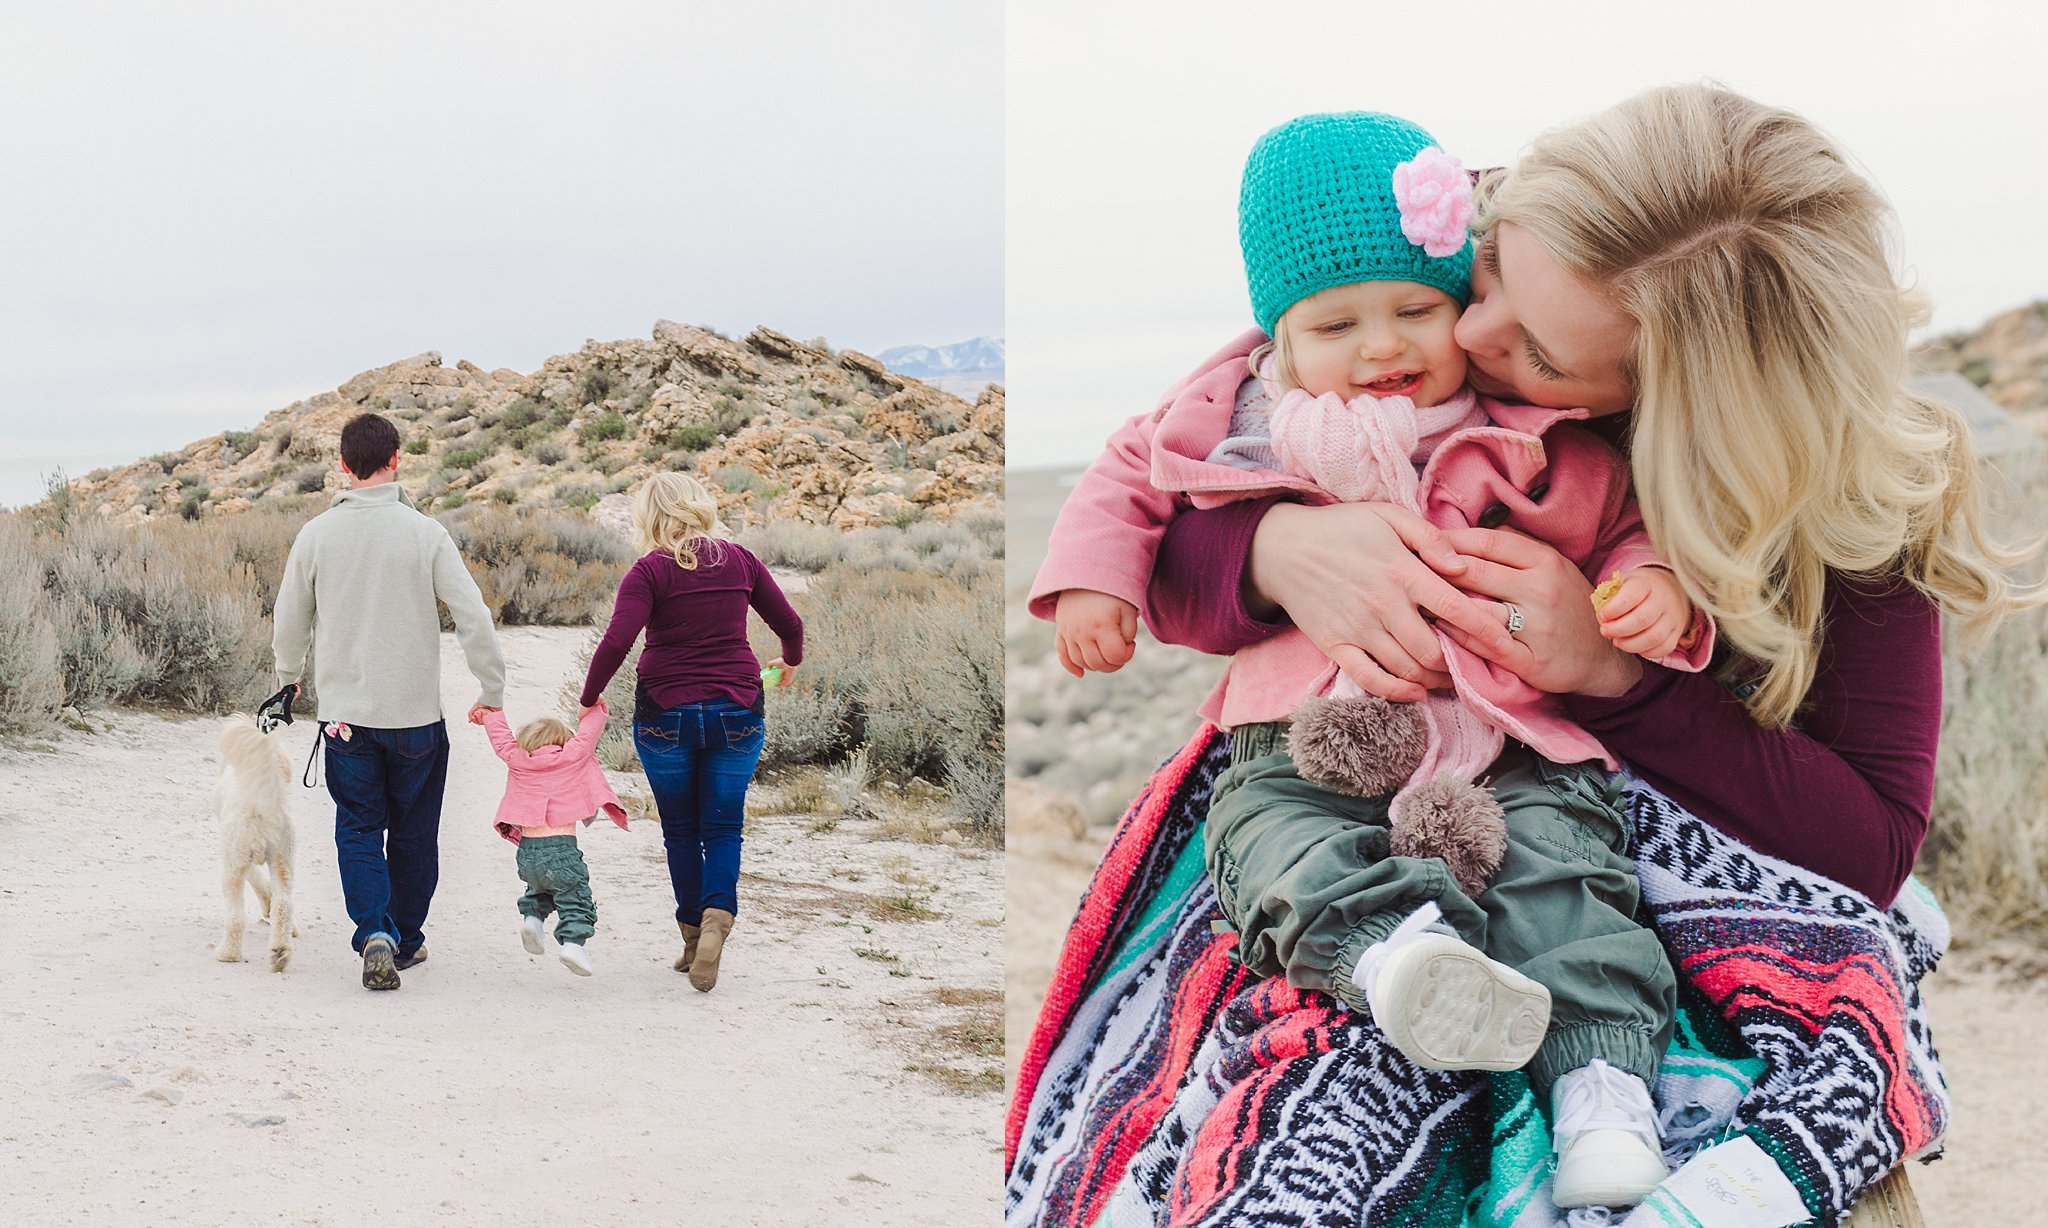 Salt Lake City,antelope island,baby,christmas photo,pets,winter,